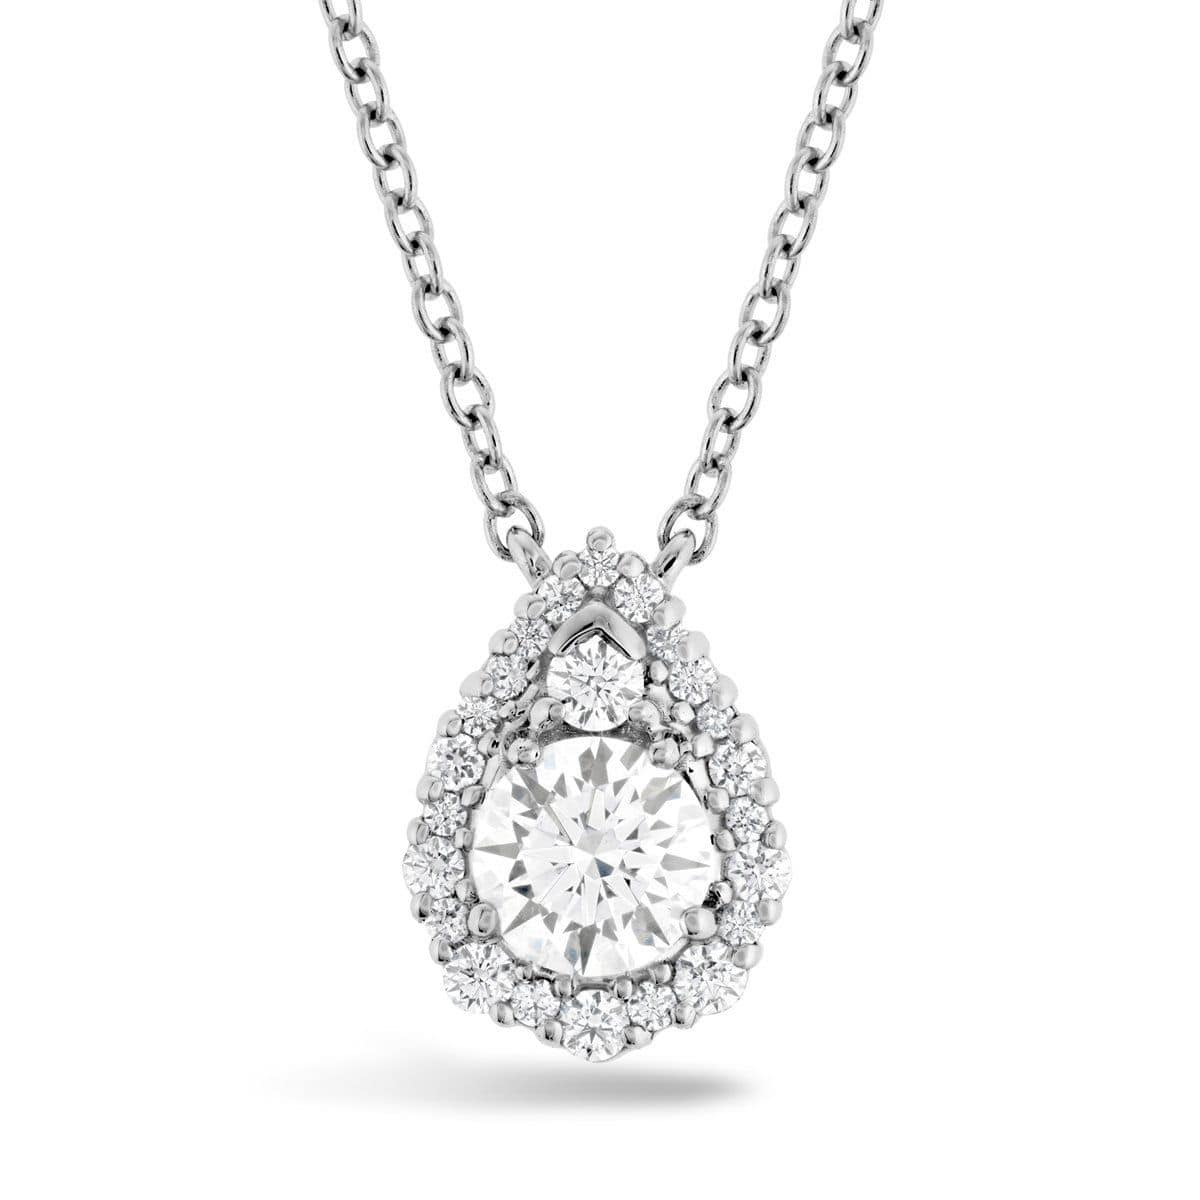 HOF Teardrop Halo Diamond Pendant & Chain - HFPHTRDH00908W-Hearts on Fire-Renee Taylor Gallery